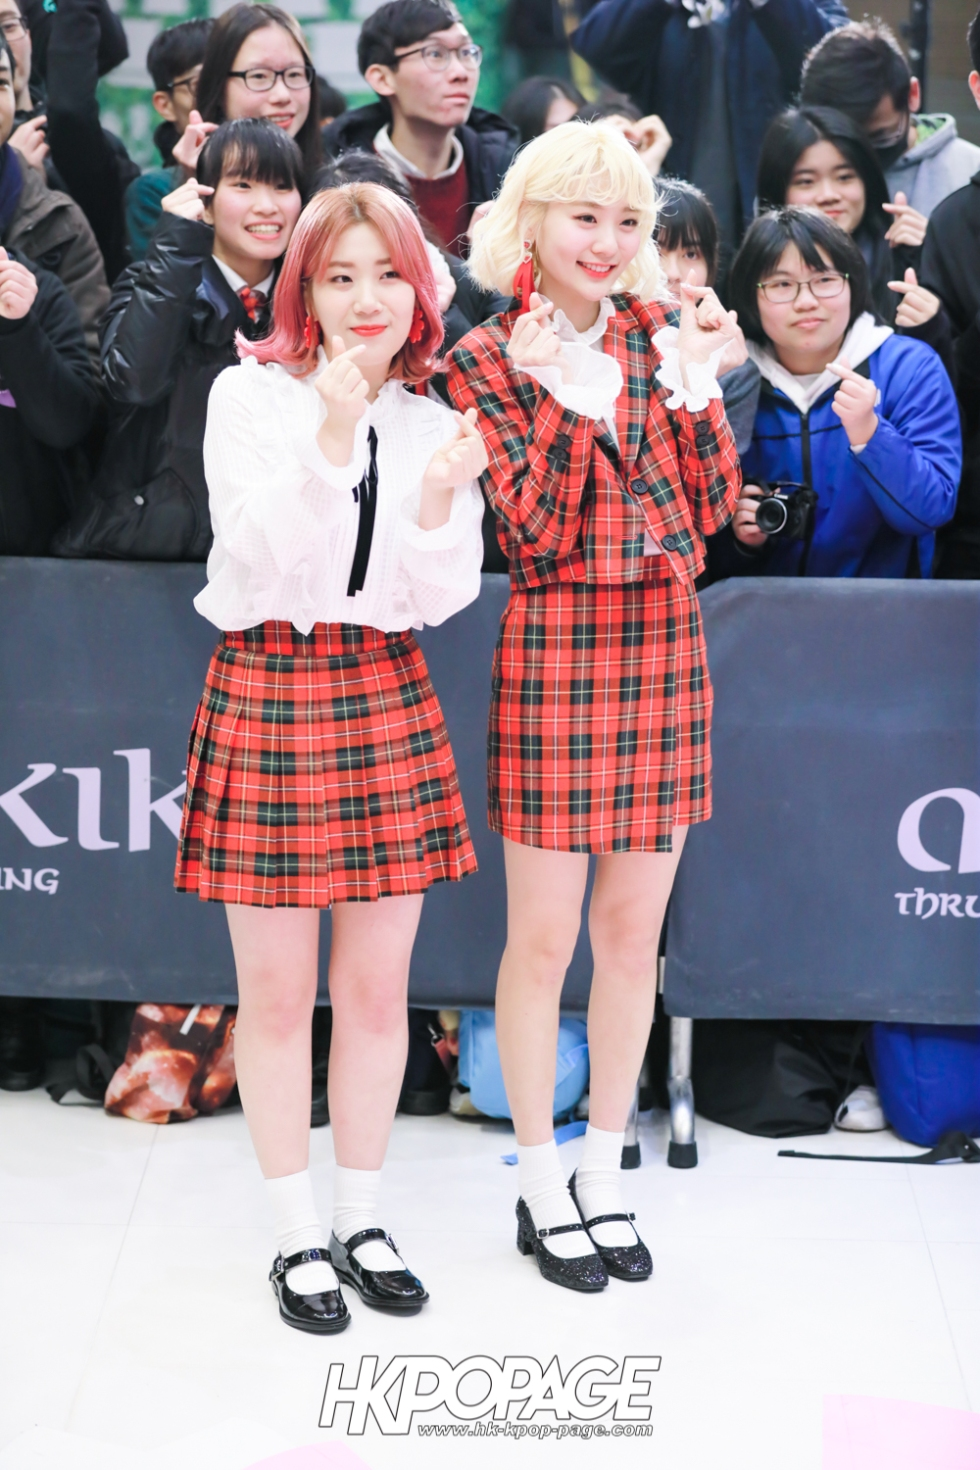 [HK.KPOP.PAGE] 180202_Mikiki x BOL4 Concert in Hong Kong Press Conference_05